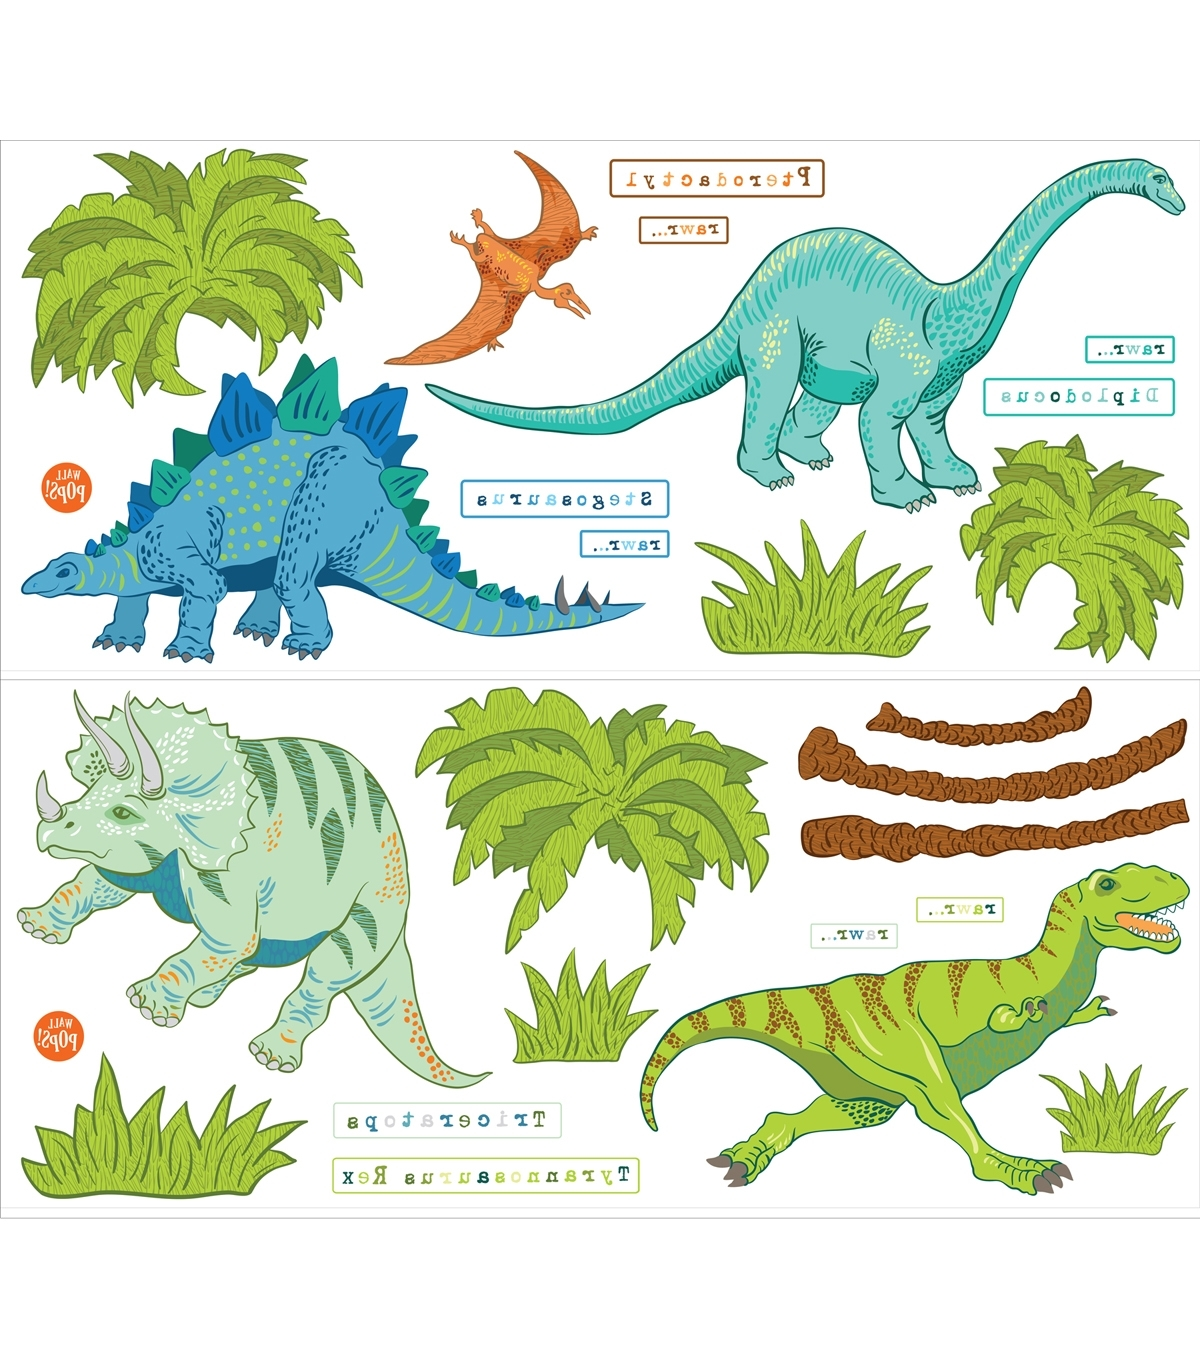 Wall Pops Dinosaur Expedition Wall Art Decal Kit, 42 Piece Set (View 12 of 15)